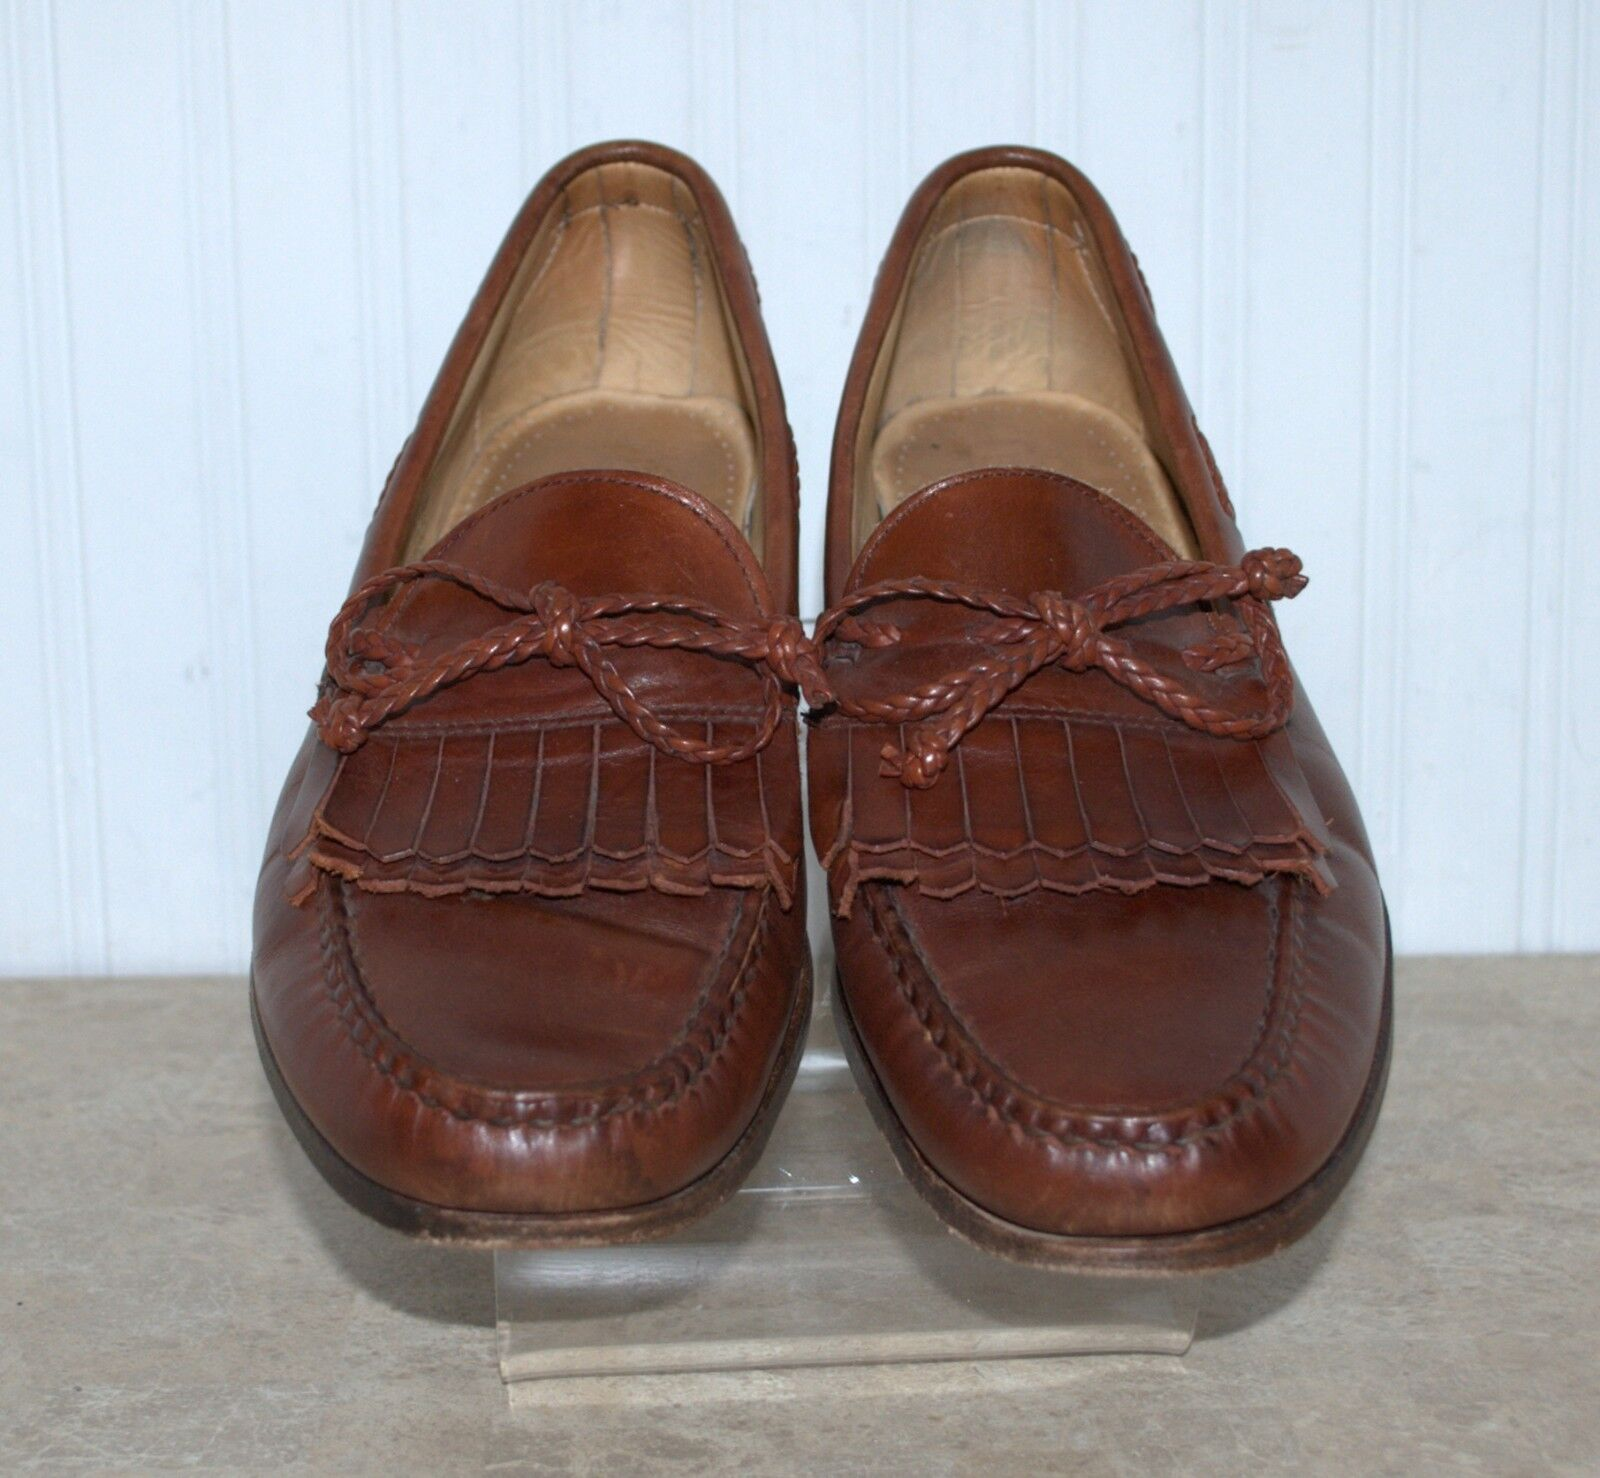 Allen Edmonds Woodstock Woodstock Woodstock 11.5 B Mans Shoes Loafer Chili Brown Pelle Kilt Top 671247